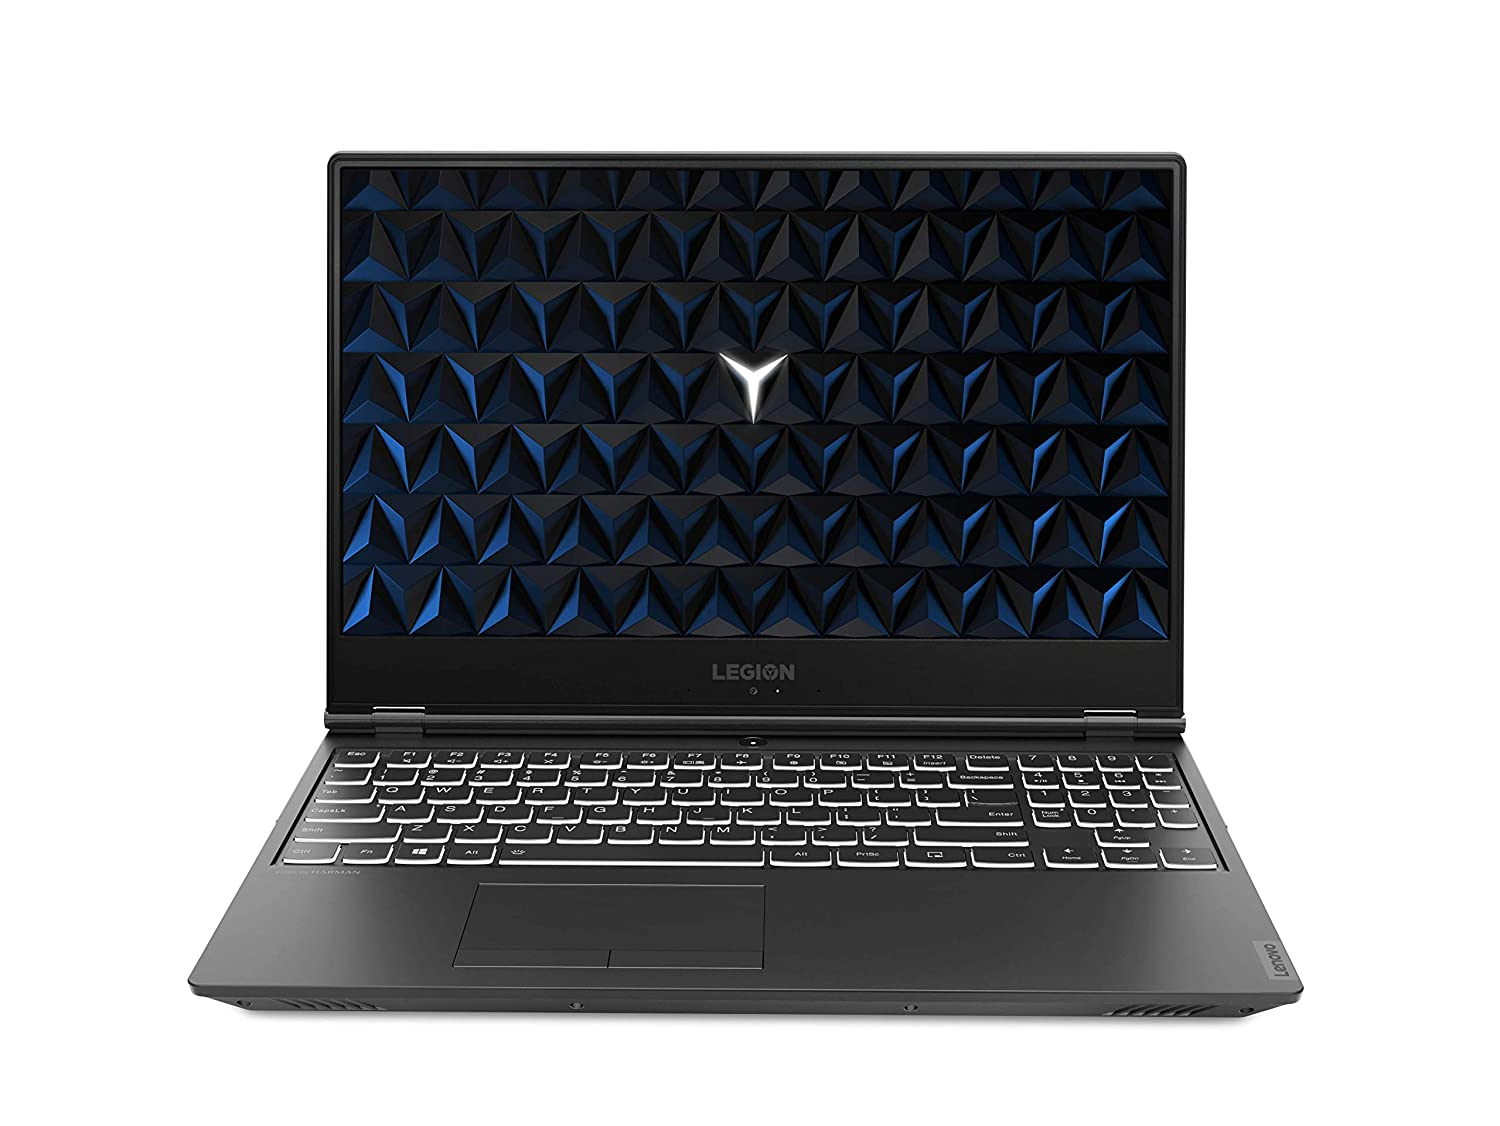 Lenovo Legion Y540 Intel Core i5 9th Gen 15.6 inch FHD Gaming Laptop (8GB/1TB + 256 GB SSD/Windows 10/4GB GTX 1650 Graphics/Black/2.3Kg), 81SY00SNIN